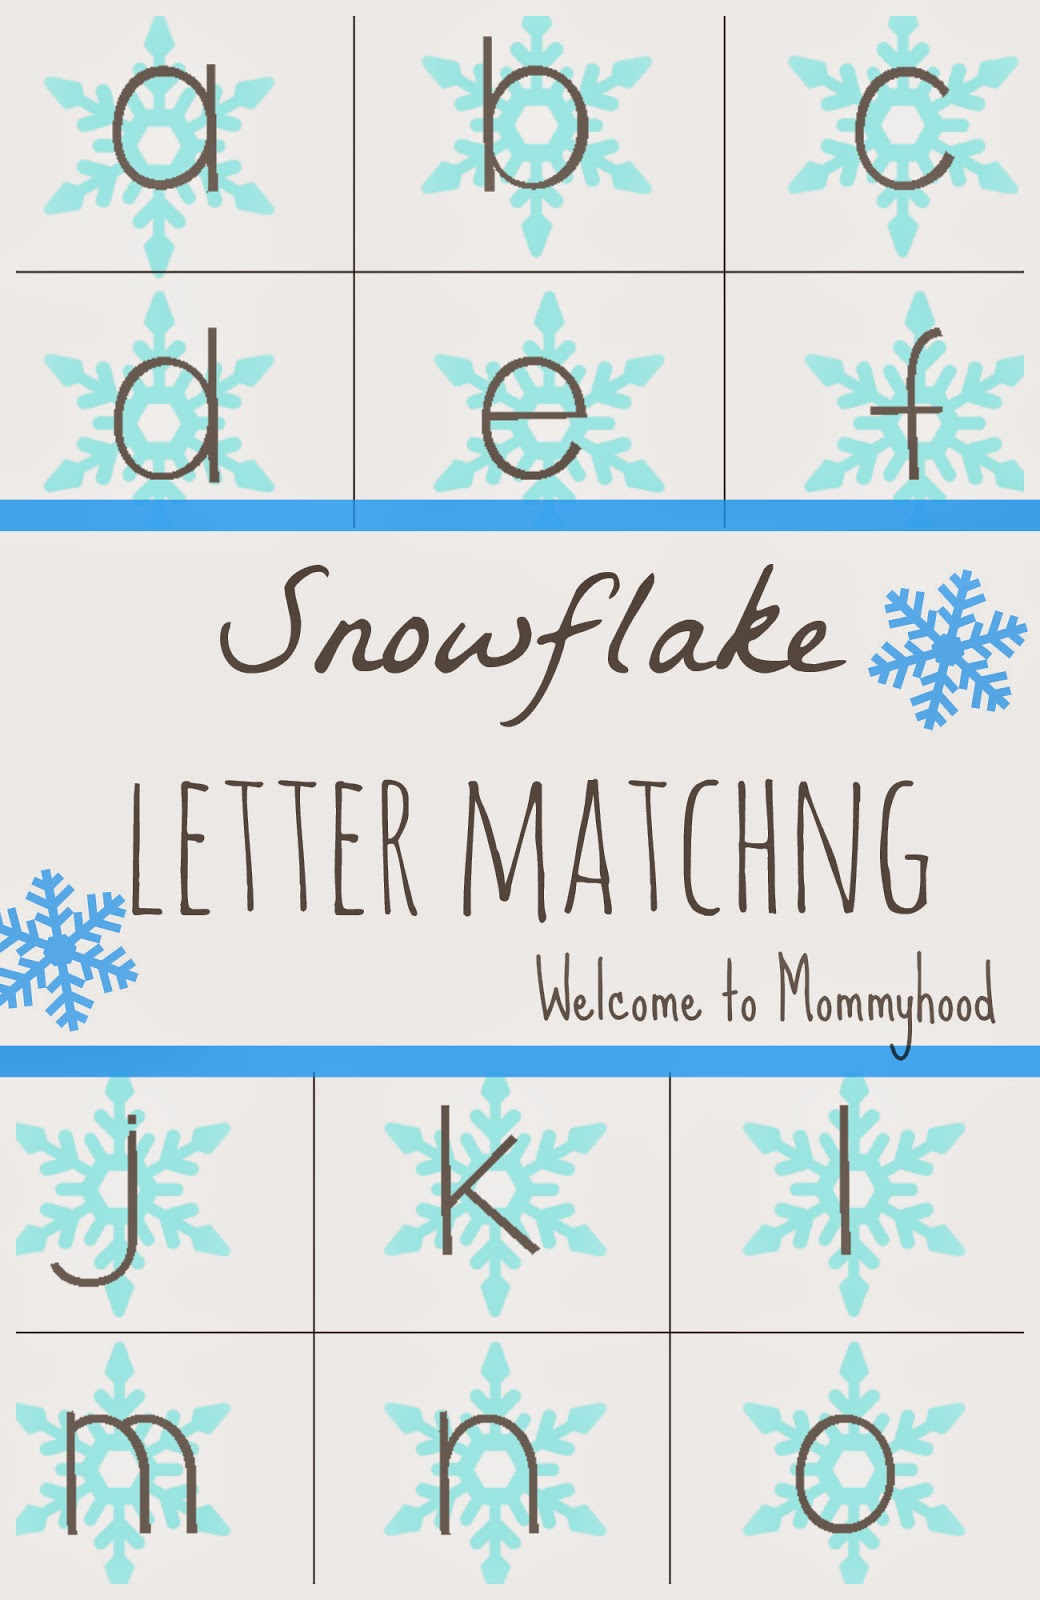 6 snowflake letter recognition activities welcome to mommyhood. Black Bedroom Furniture Sets. Home Design Ideas